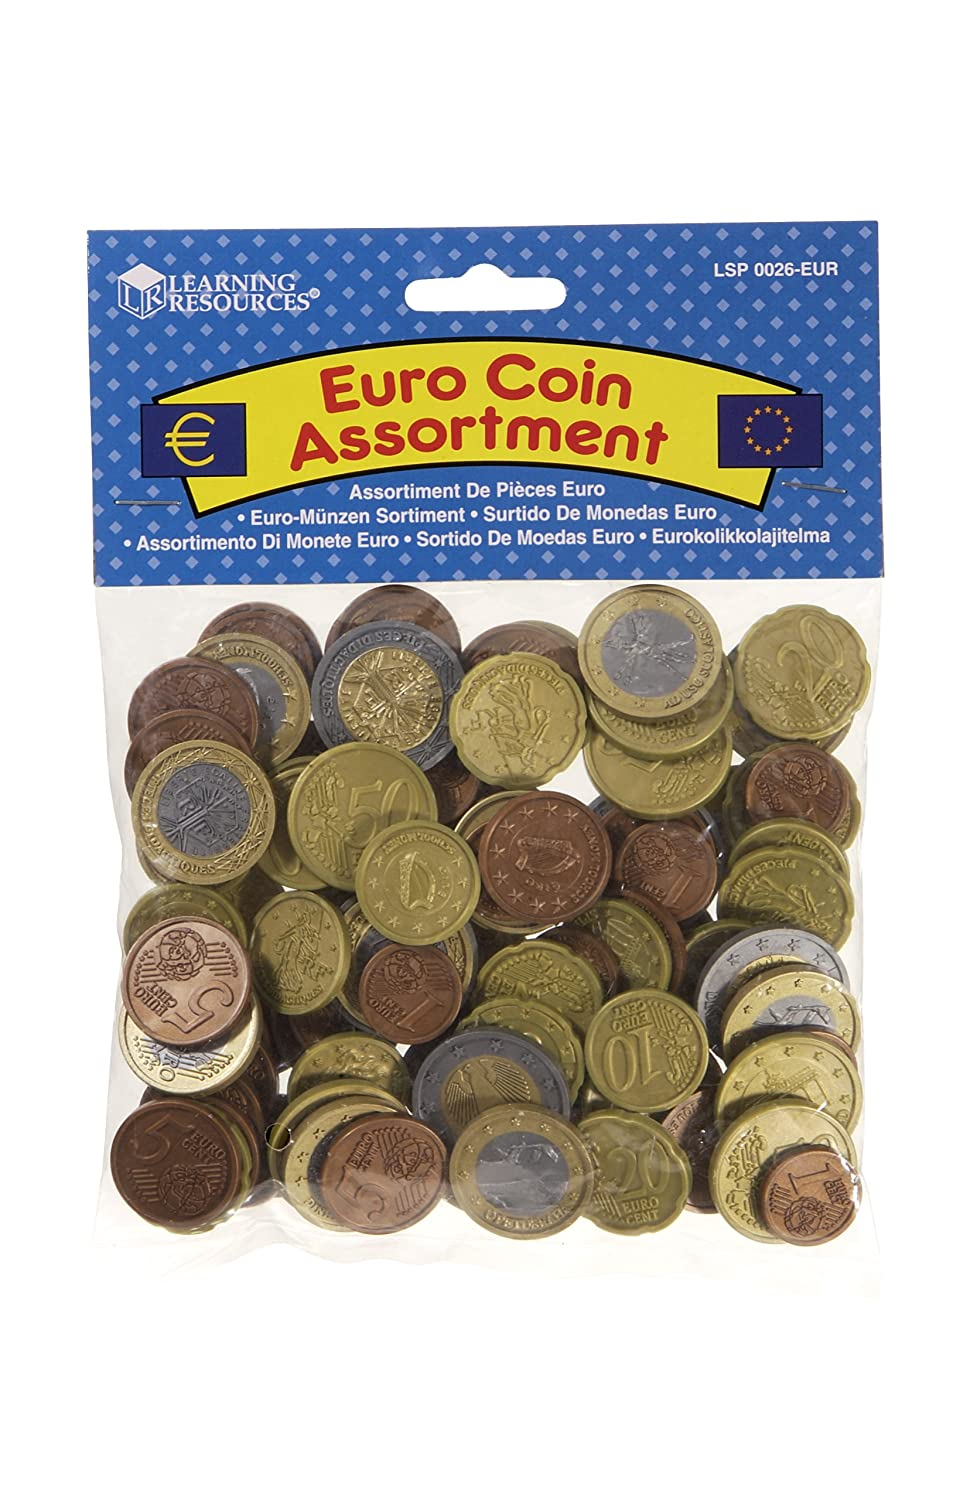 Learning Resources Set monedas Euro surtido: modelos aleatorios